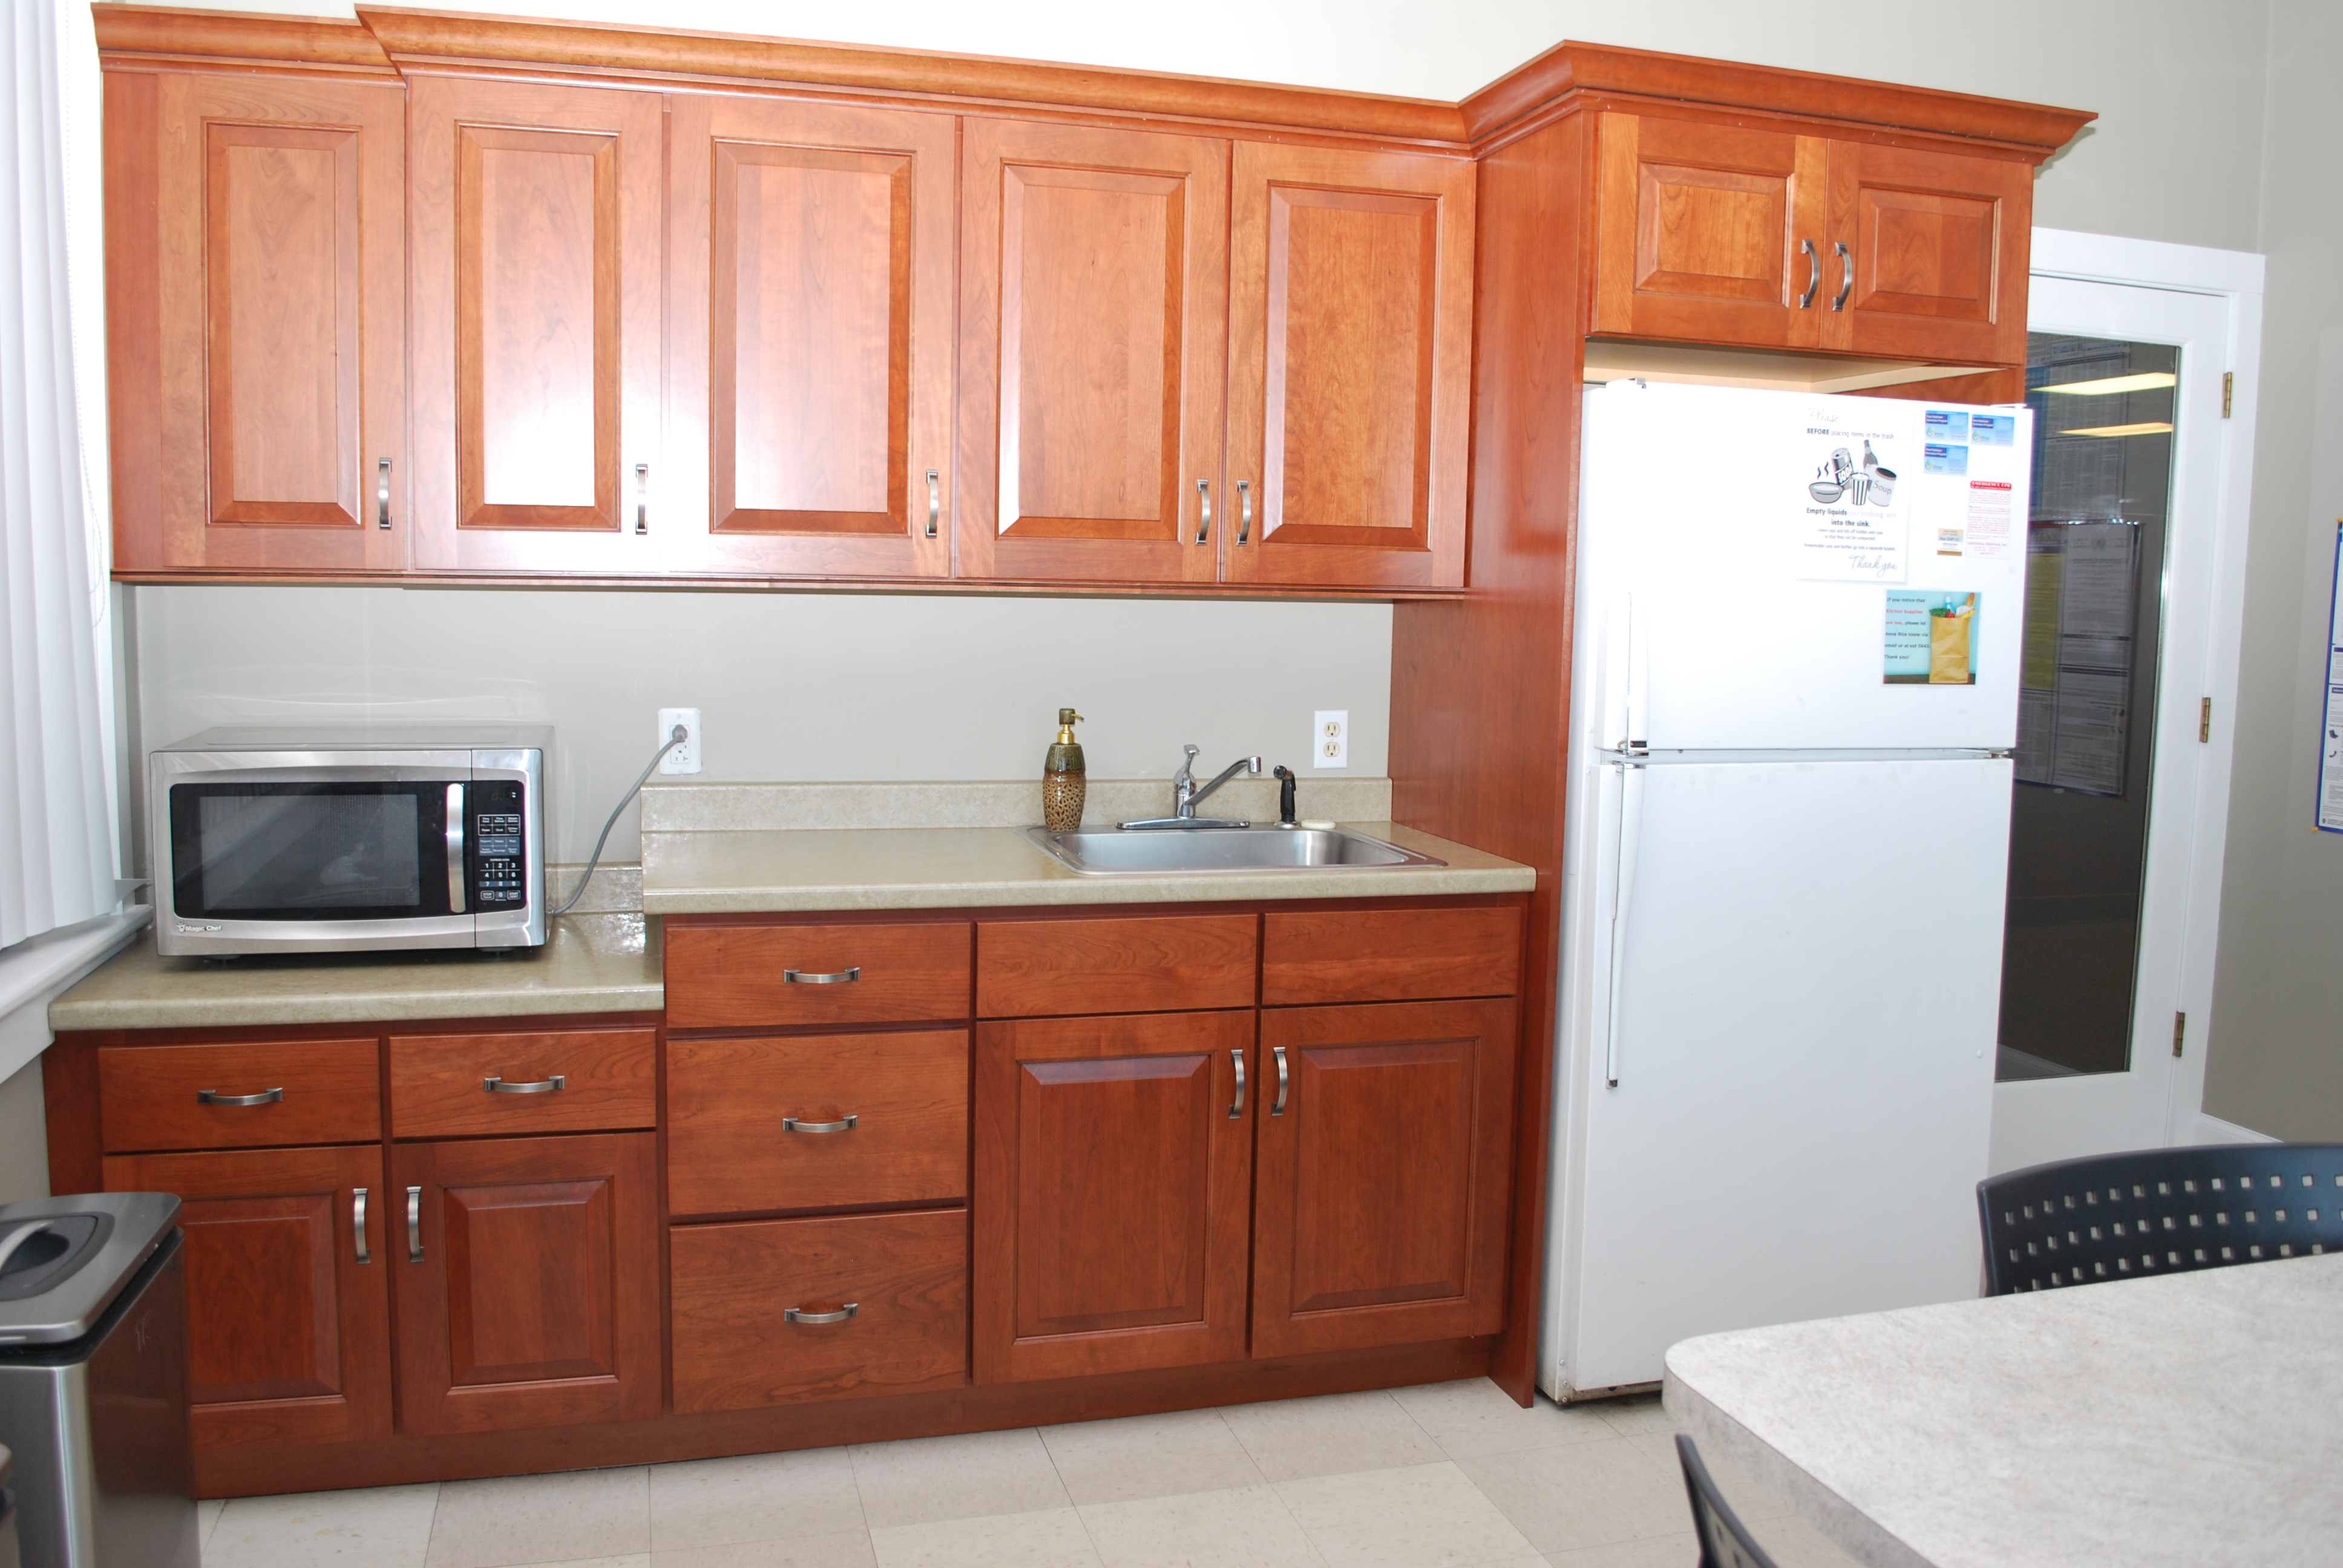 AFTER - office break room with cherry wood cabinetry doors and laminated cherry veneer covering other surfaces.